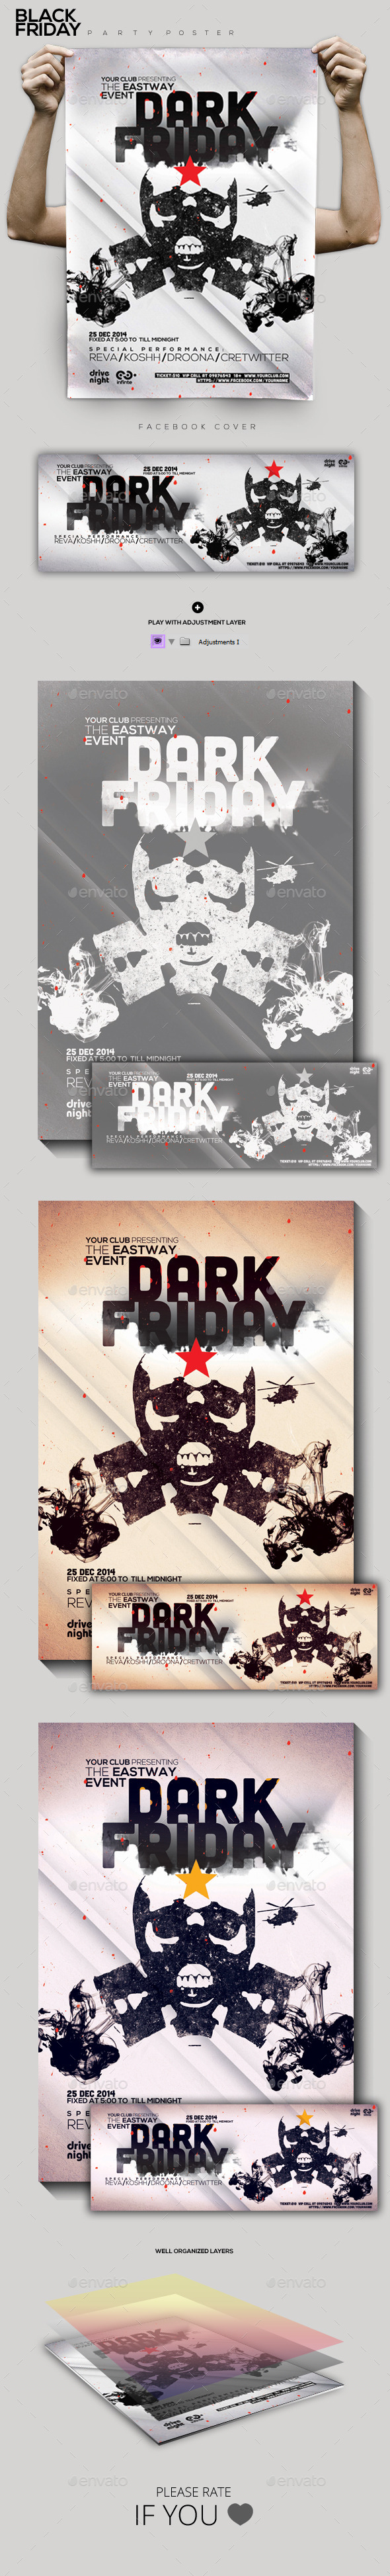 Black Friday Party Flyer/Poster - Clubs & Parties Events